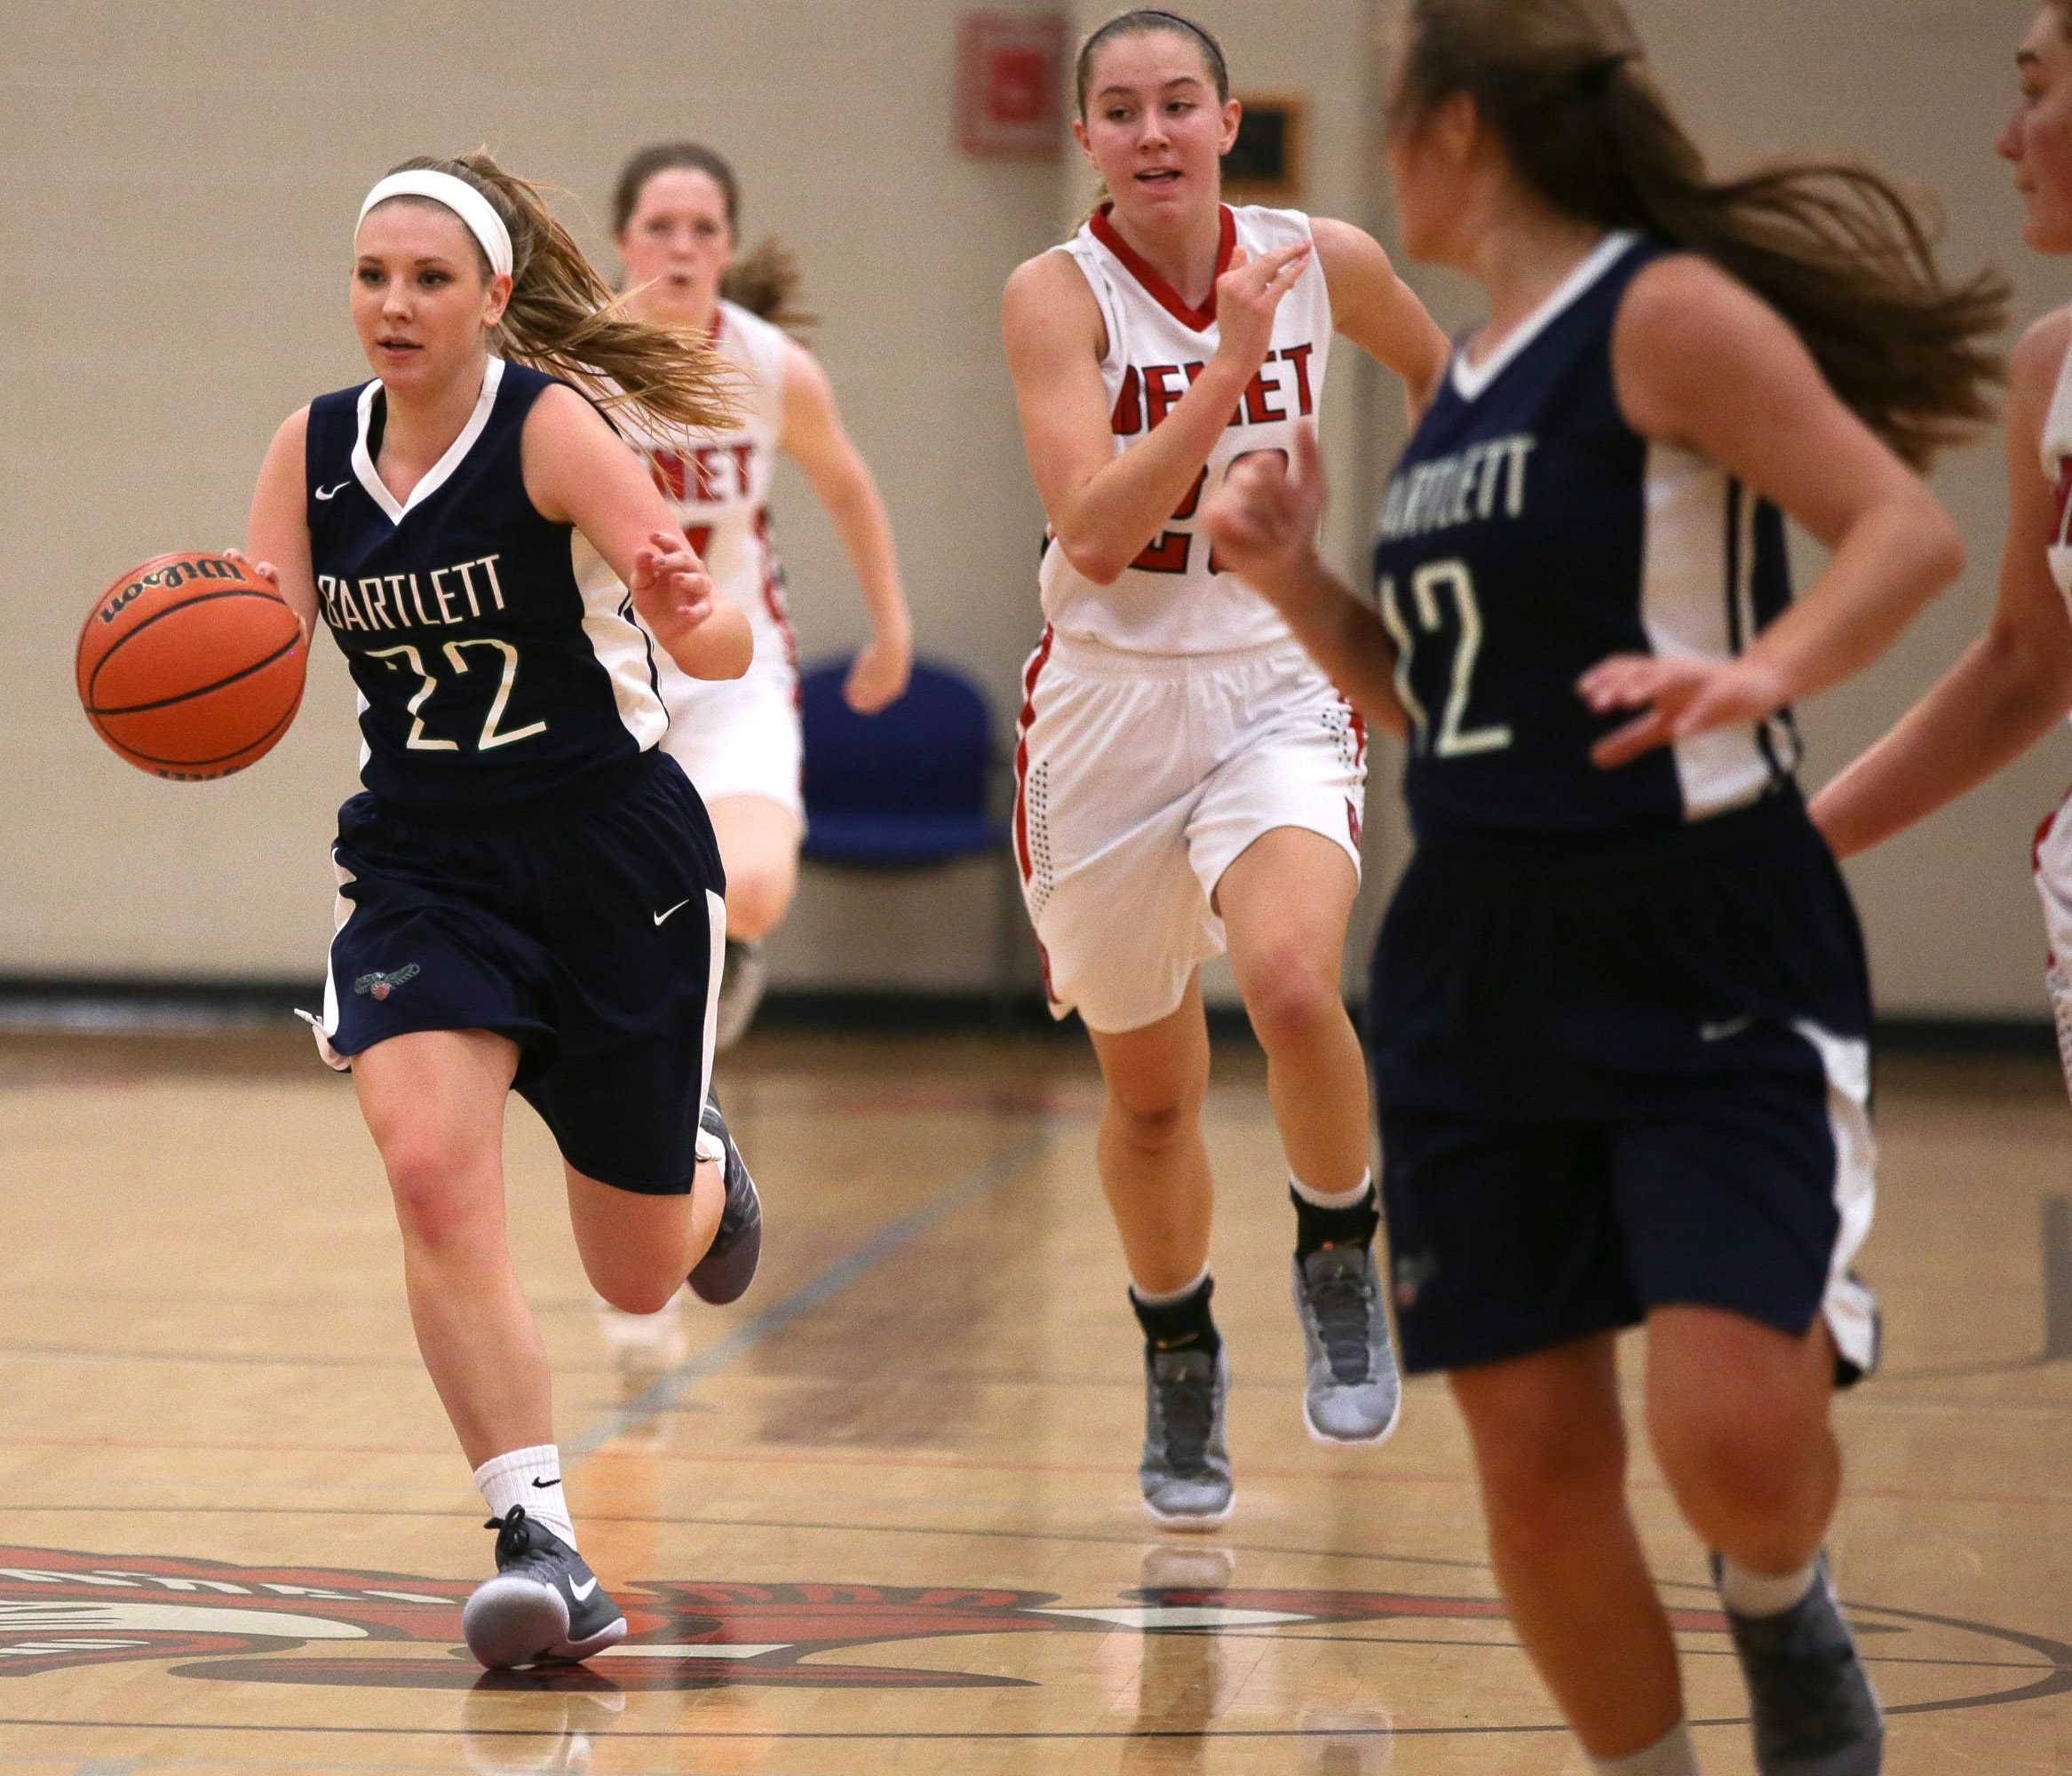 Bartlett guard Sarah Jurek (22) pushes the ball up the court on a fast break against Benet at Benet Academy in Lisle, IL on Friday, November 18, 2016